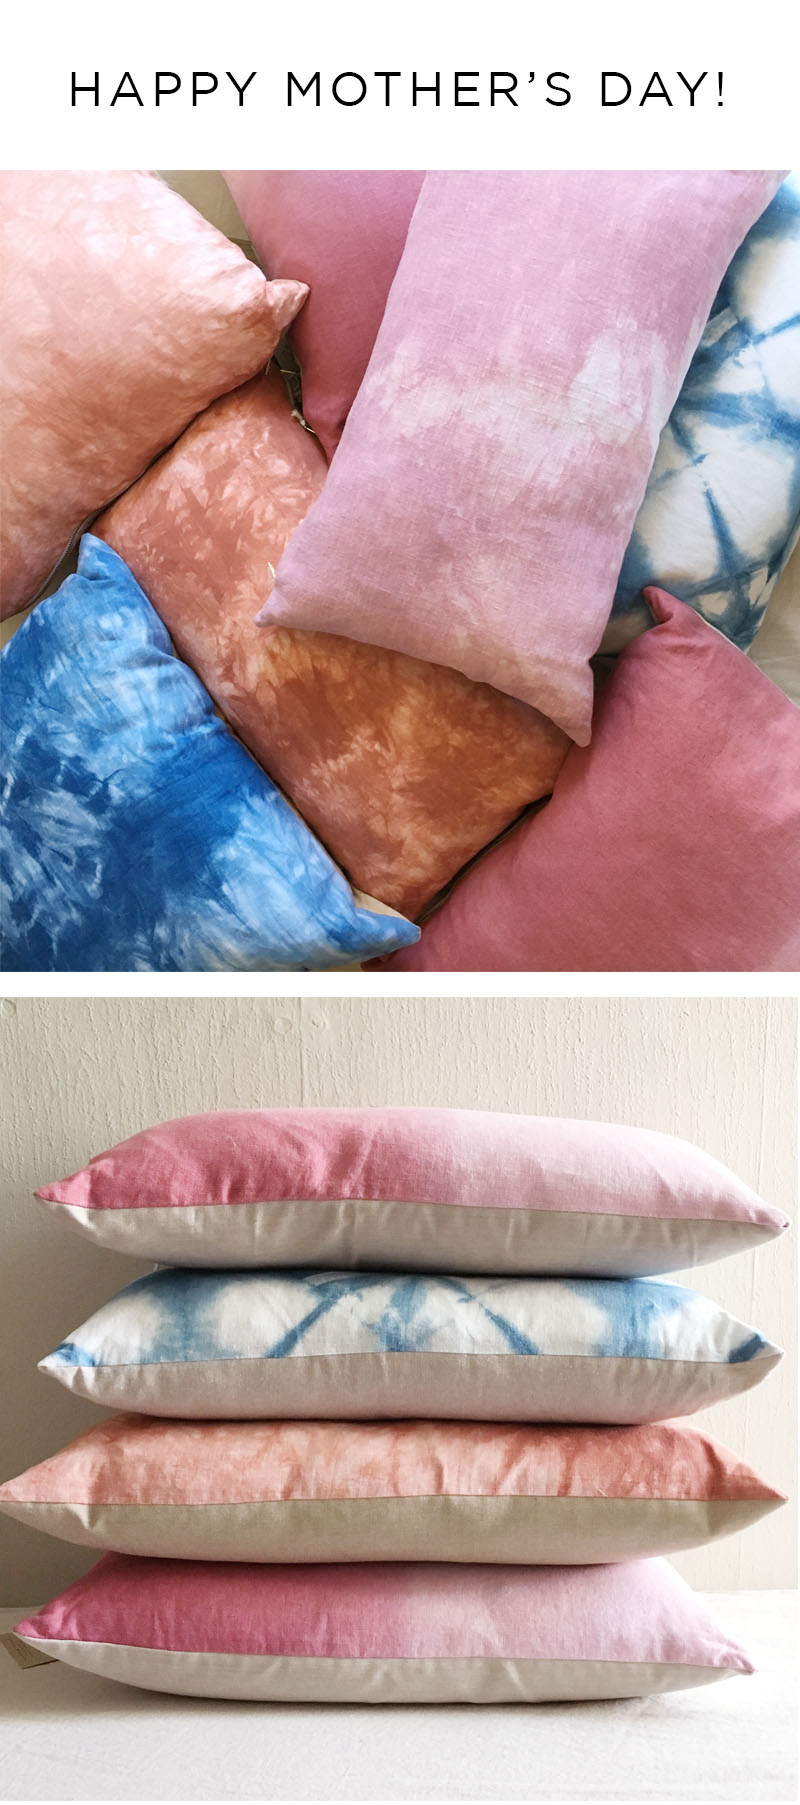 Mother's Day is coming!! Take 20% off any order over $50 at  Flora Poste Studio by entering the code MAMAME at checkout!Ends Sunday April 30 at midnight!  This is on top of our  pillows which are already on sale! ONE  cotton velvet pillow left in stock! And various colors and sizes of linen pillows.  Our  organic cotton gauze scarves are another great Mother's Day gift, made from GOTS-certified organic cotton gauze, sourced from a fair-trade, female owned and operated mill in India. Our  cocktail napkins are made from an organic cotton broadcloth from the same mill.  And as always we have our best-selling  flour sack napkins and  dishtowels in a variety of colors.  Retailers, we are accepting applications for wholesale accounts! Please  email me for a line sheet!  Happy Spring! xo Kendra